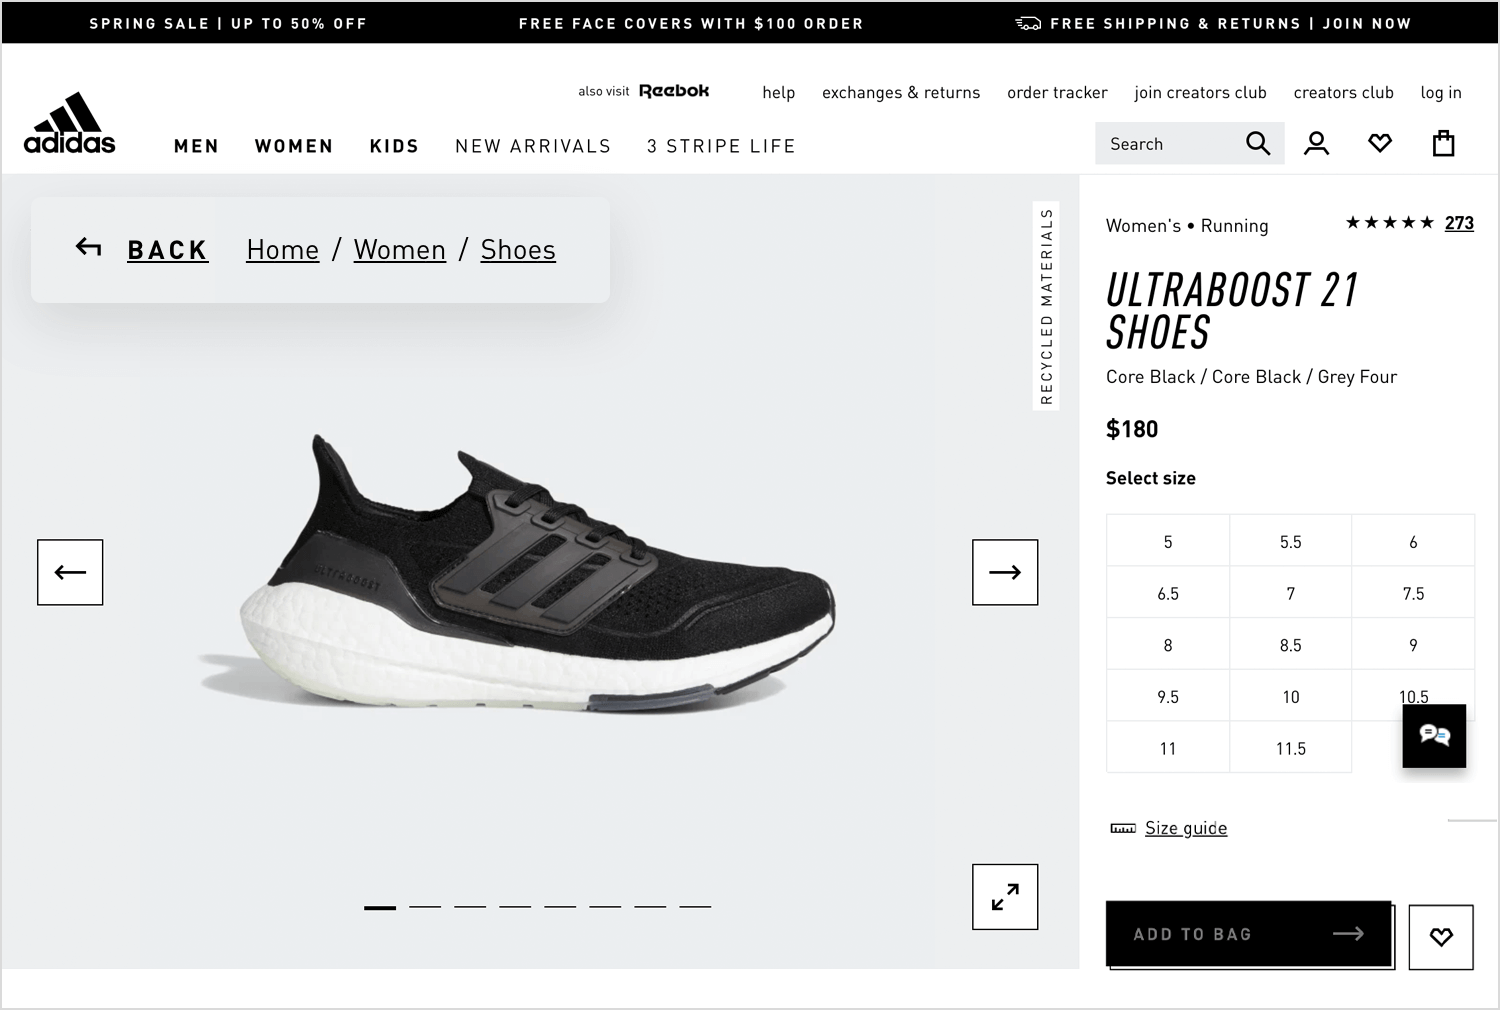 adidas website using breadcrumbs